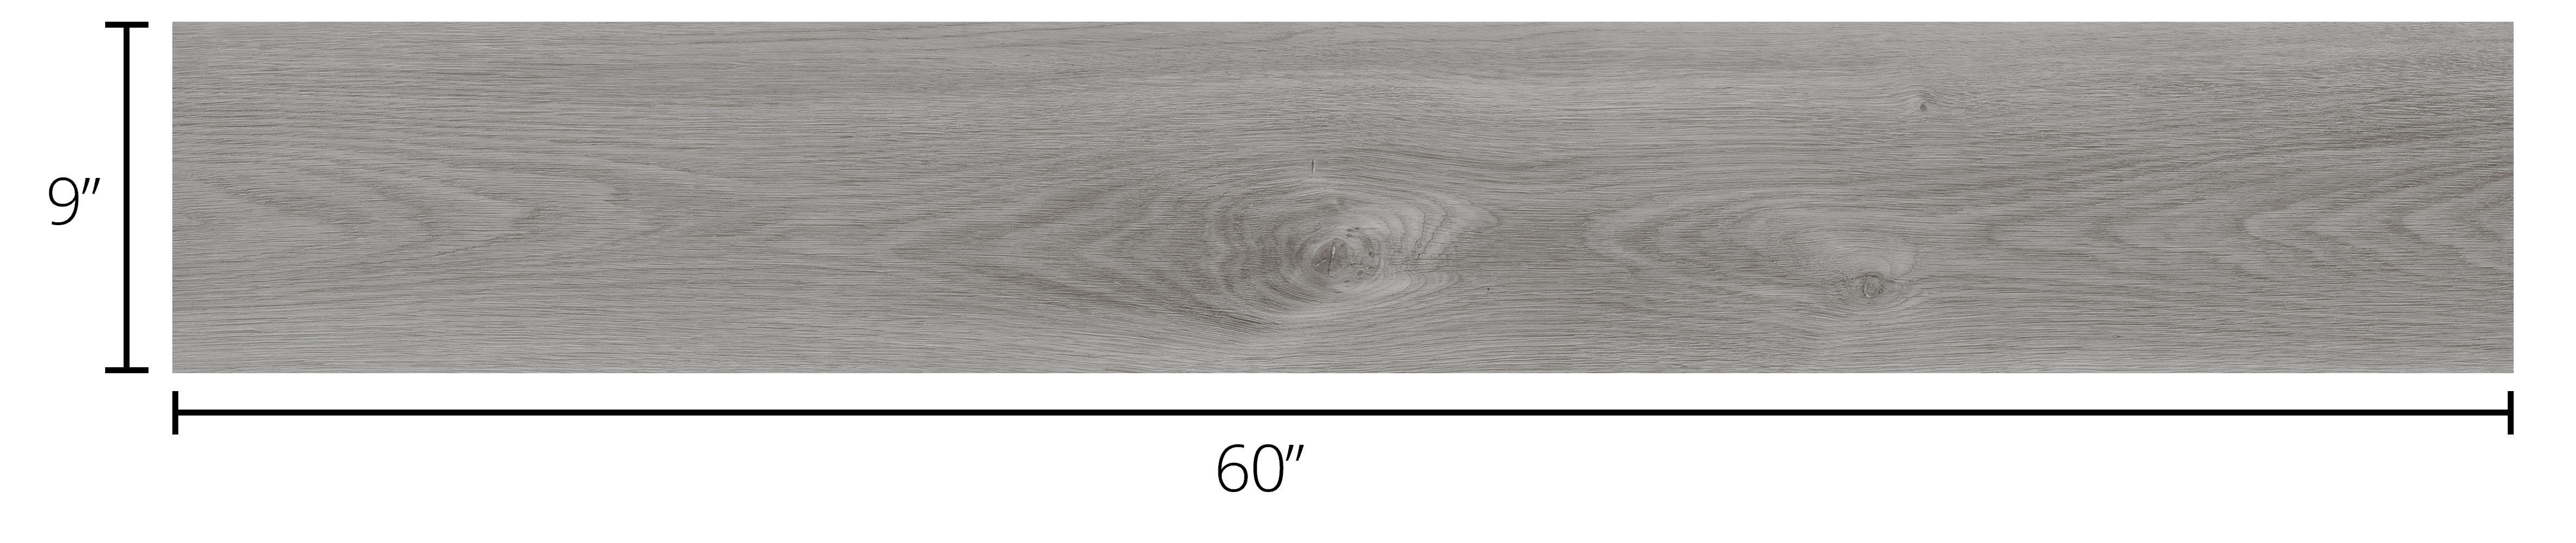 lvt-bevel-enhance